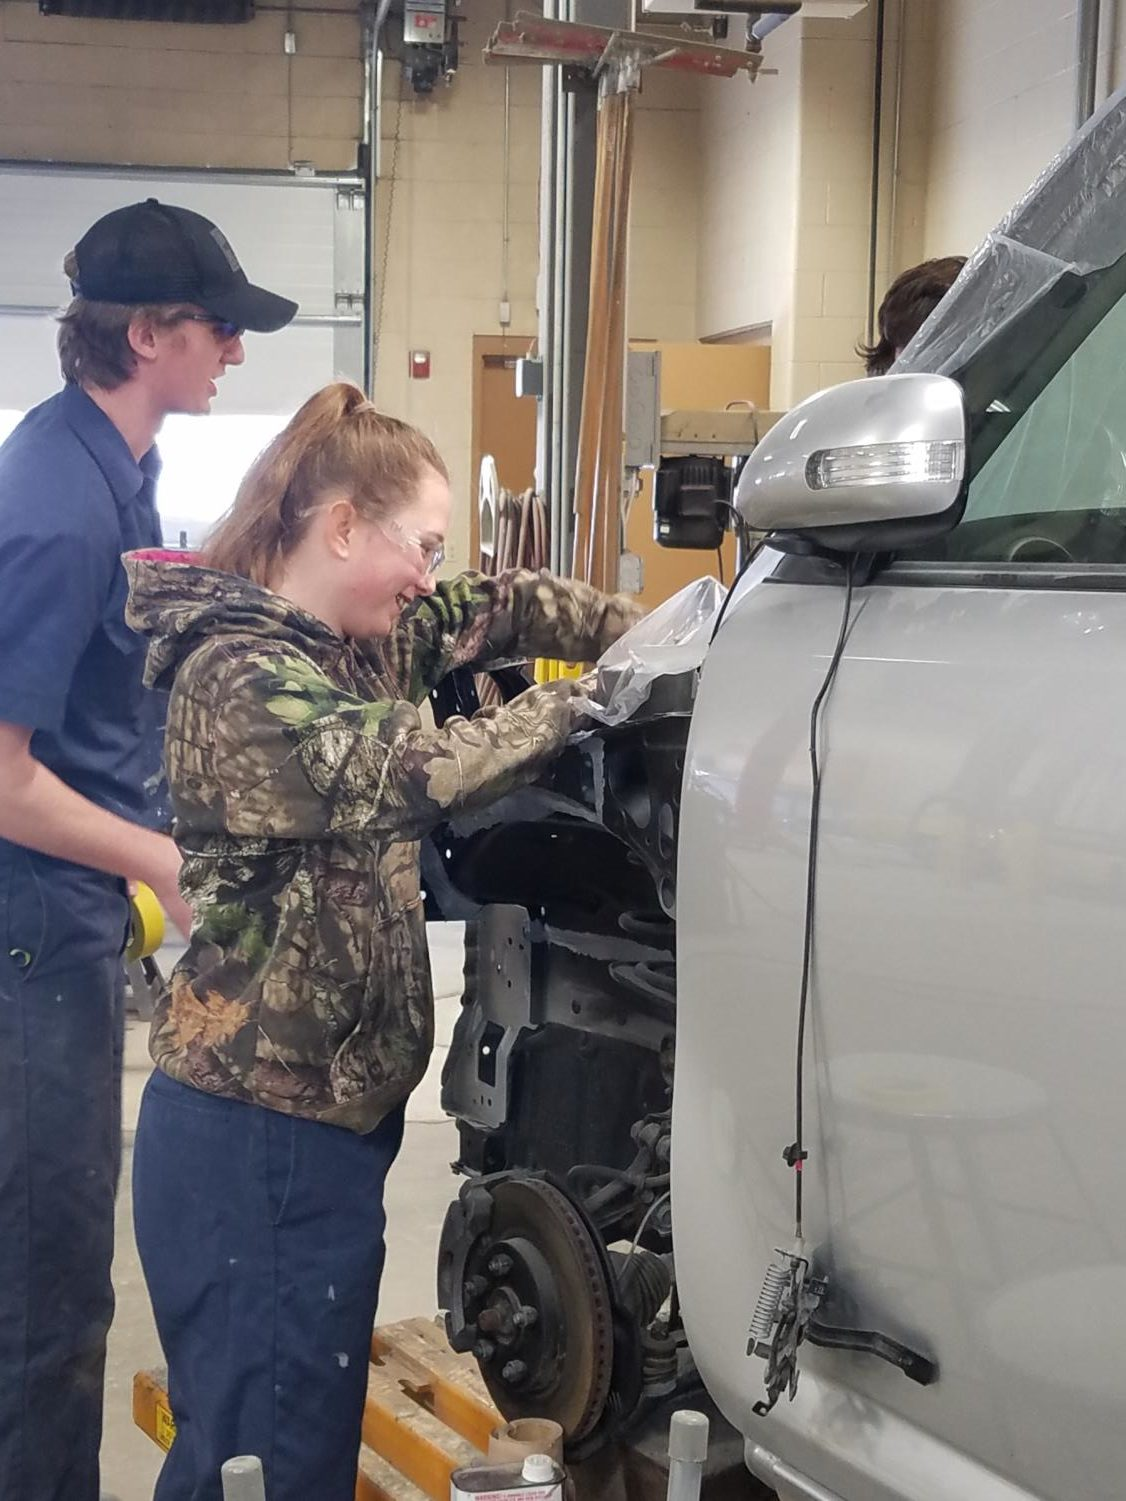 Molly Smart, senior at Liberty, shows her knowledge in Collision Repair.